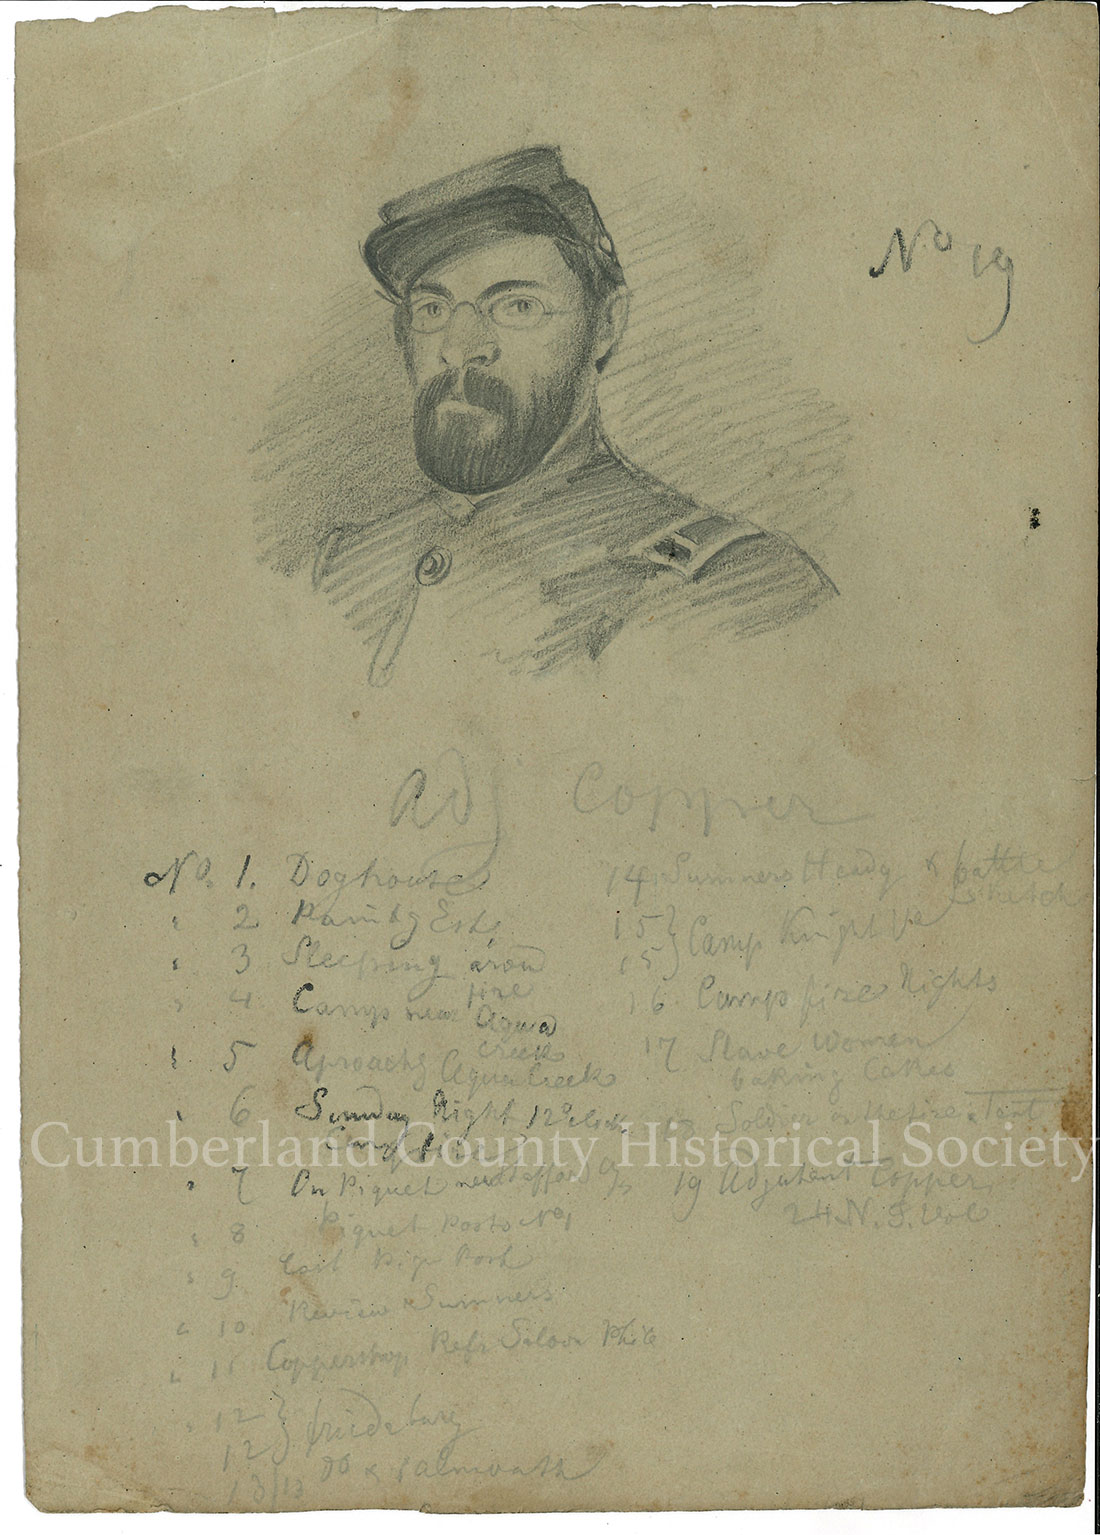 Adjutant Copper with Listings under the sketch Image